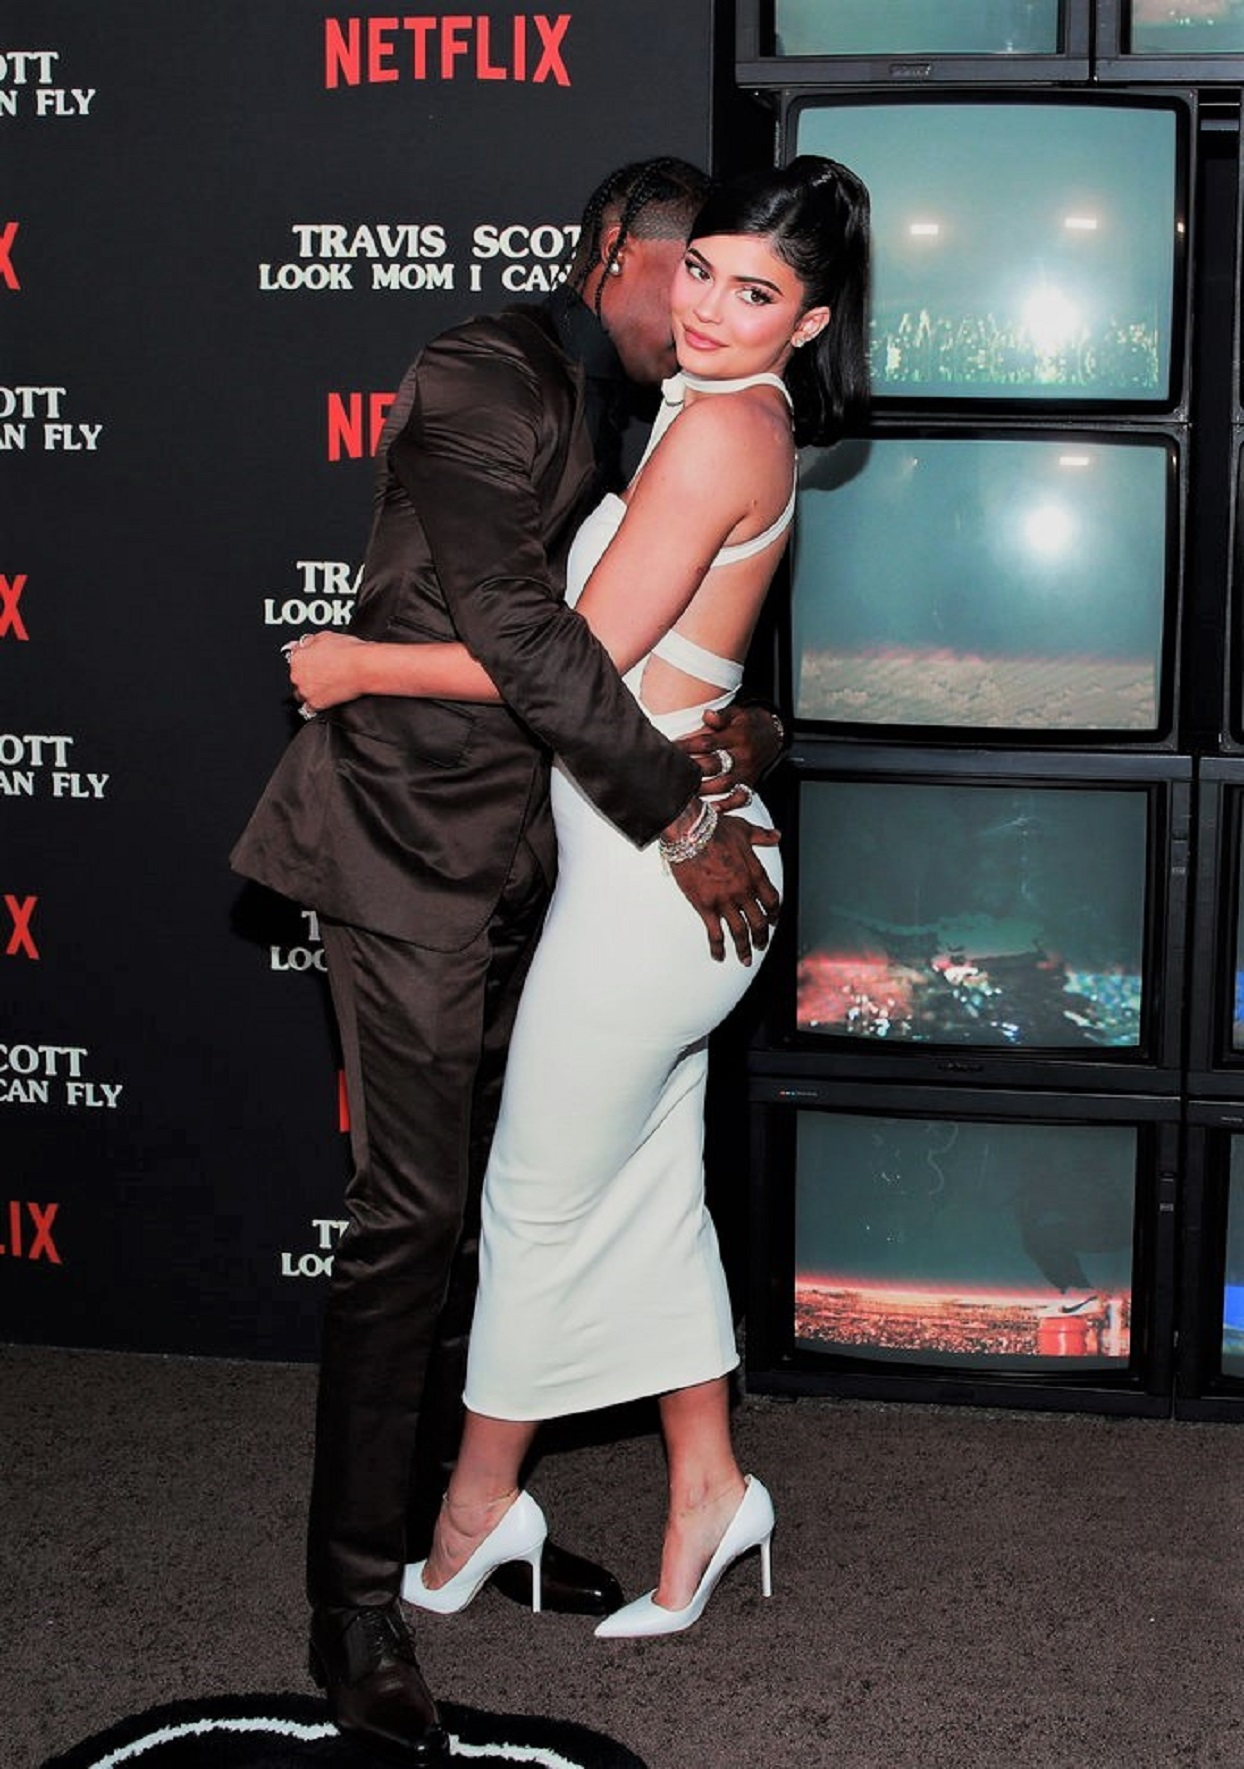 """Travis Scott and Kylie Jenner at Premiere Of Netflix's """"Travis Scott: Look Mom I Can Fly"""""""